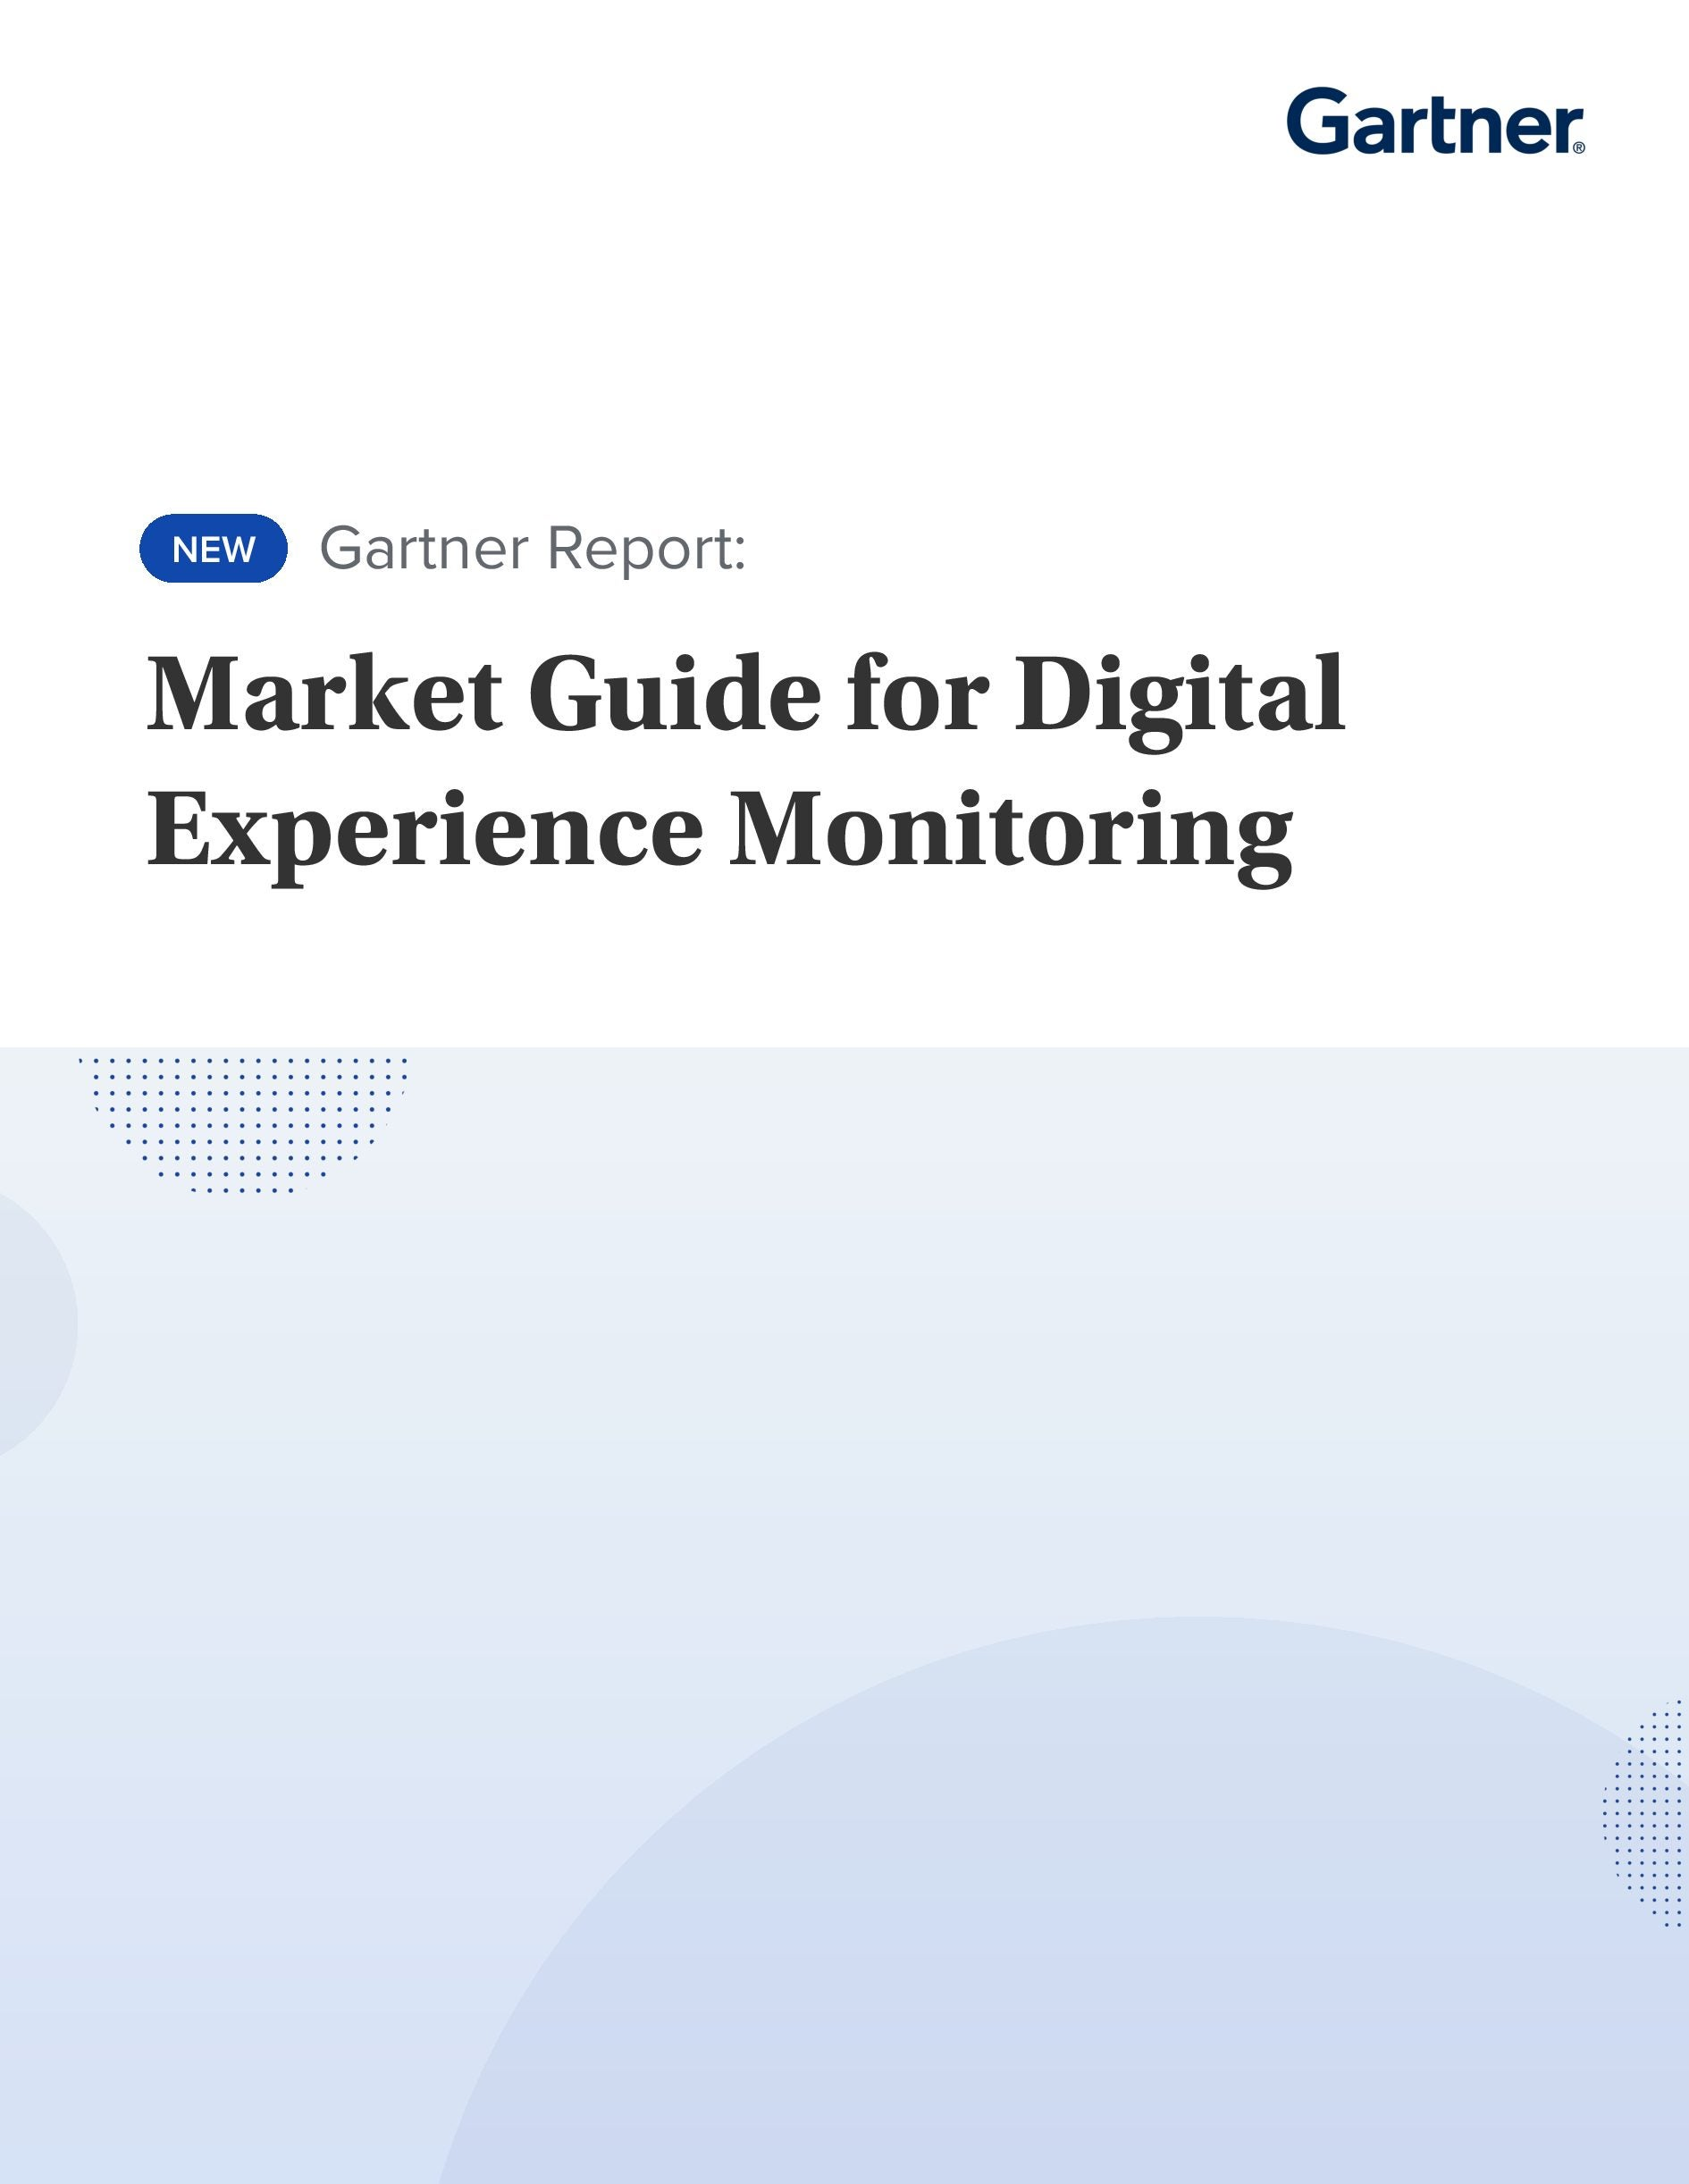 Gartner's 2019 Market Guide for Digital Experience Monitoring (DEM)